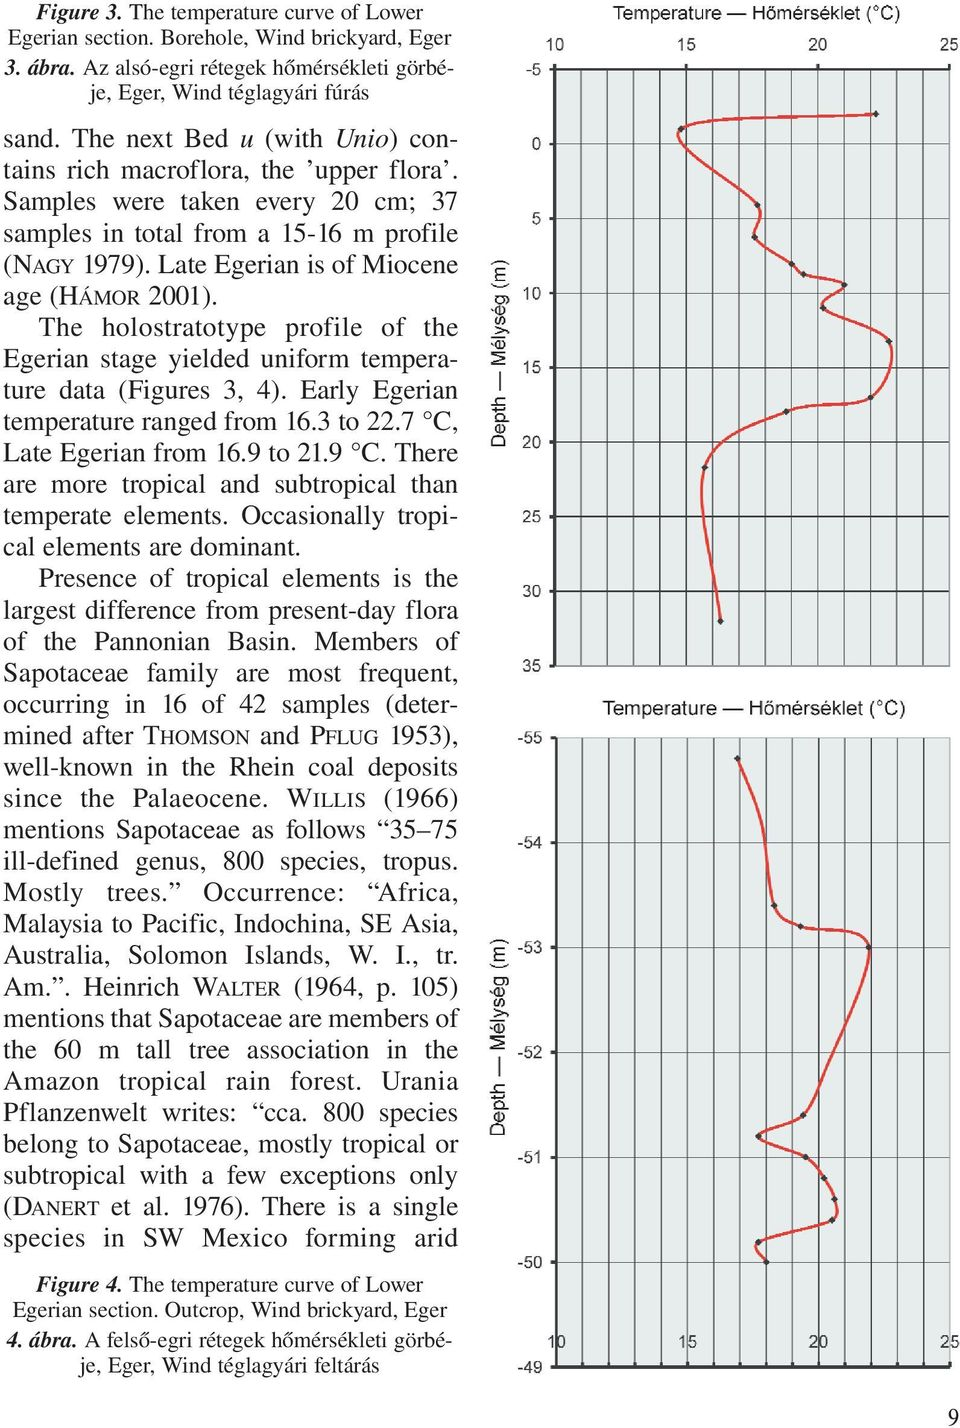 Late Egerian is of Miocene age (HÁMOR 2001). The holostratotype profile of the Egerian stage yielded uniform temperature data (Figures 3, 4). Early Egerian temperature ranged from 16.3 to 22.